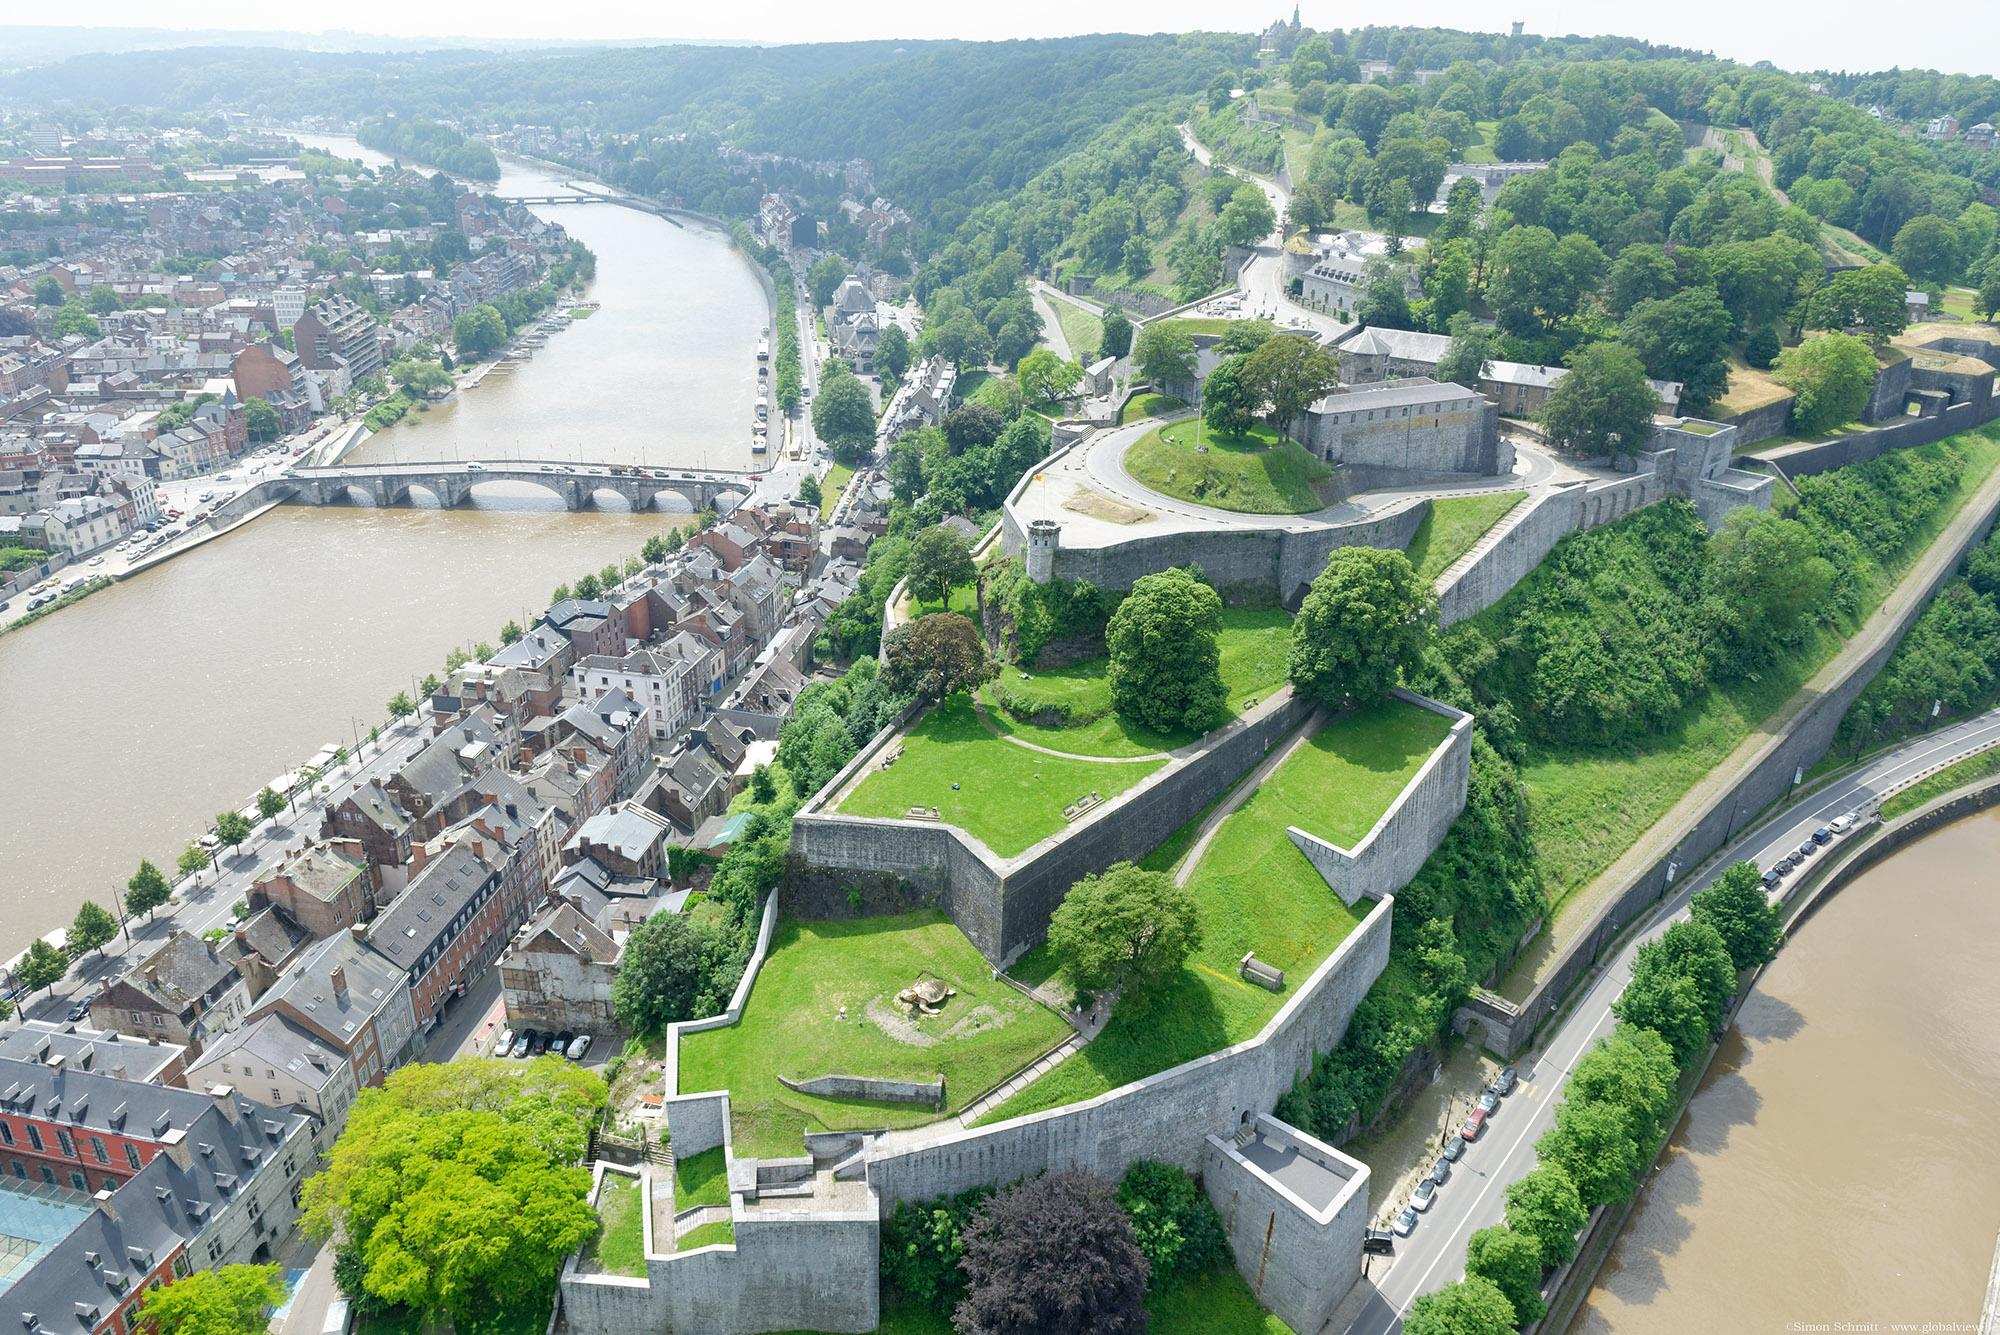 An aerial view of the Citadel of Namur, taken at the confluence of the Sambre and the Meuse.